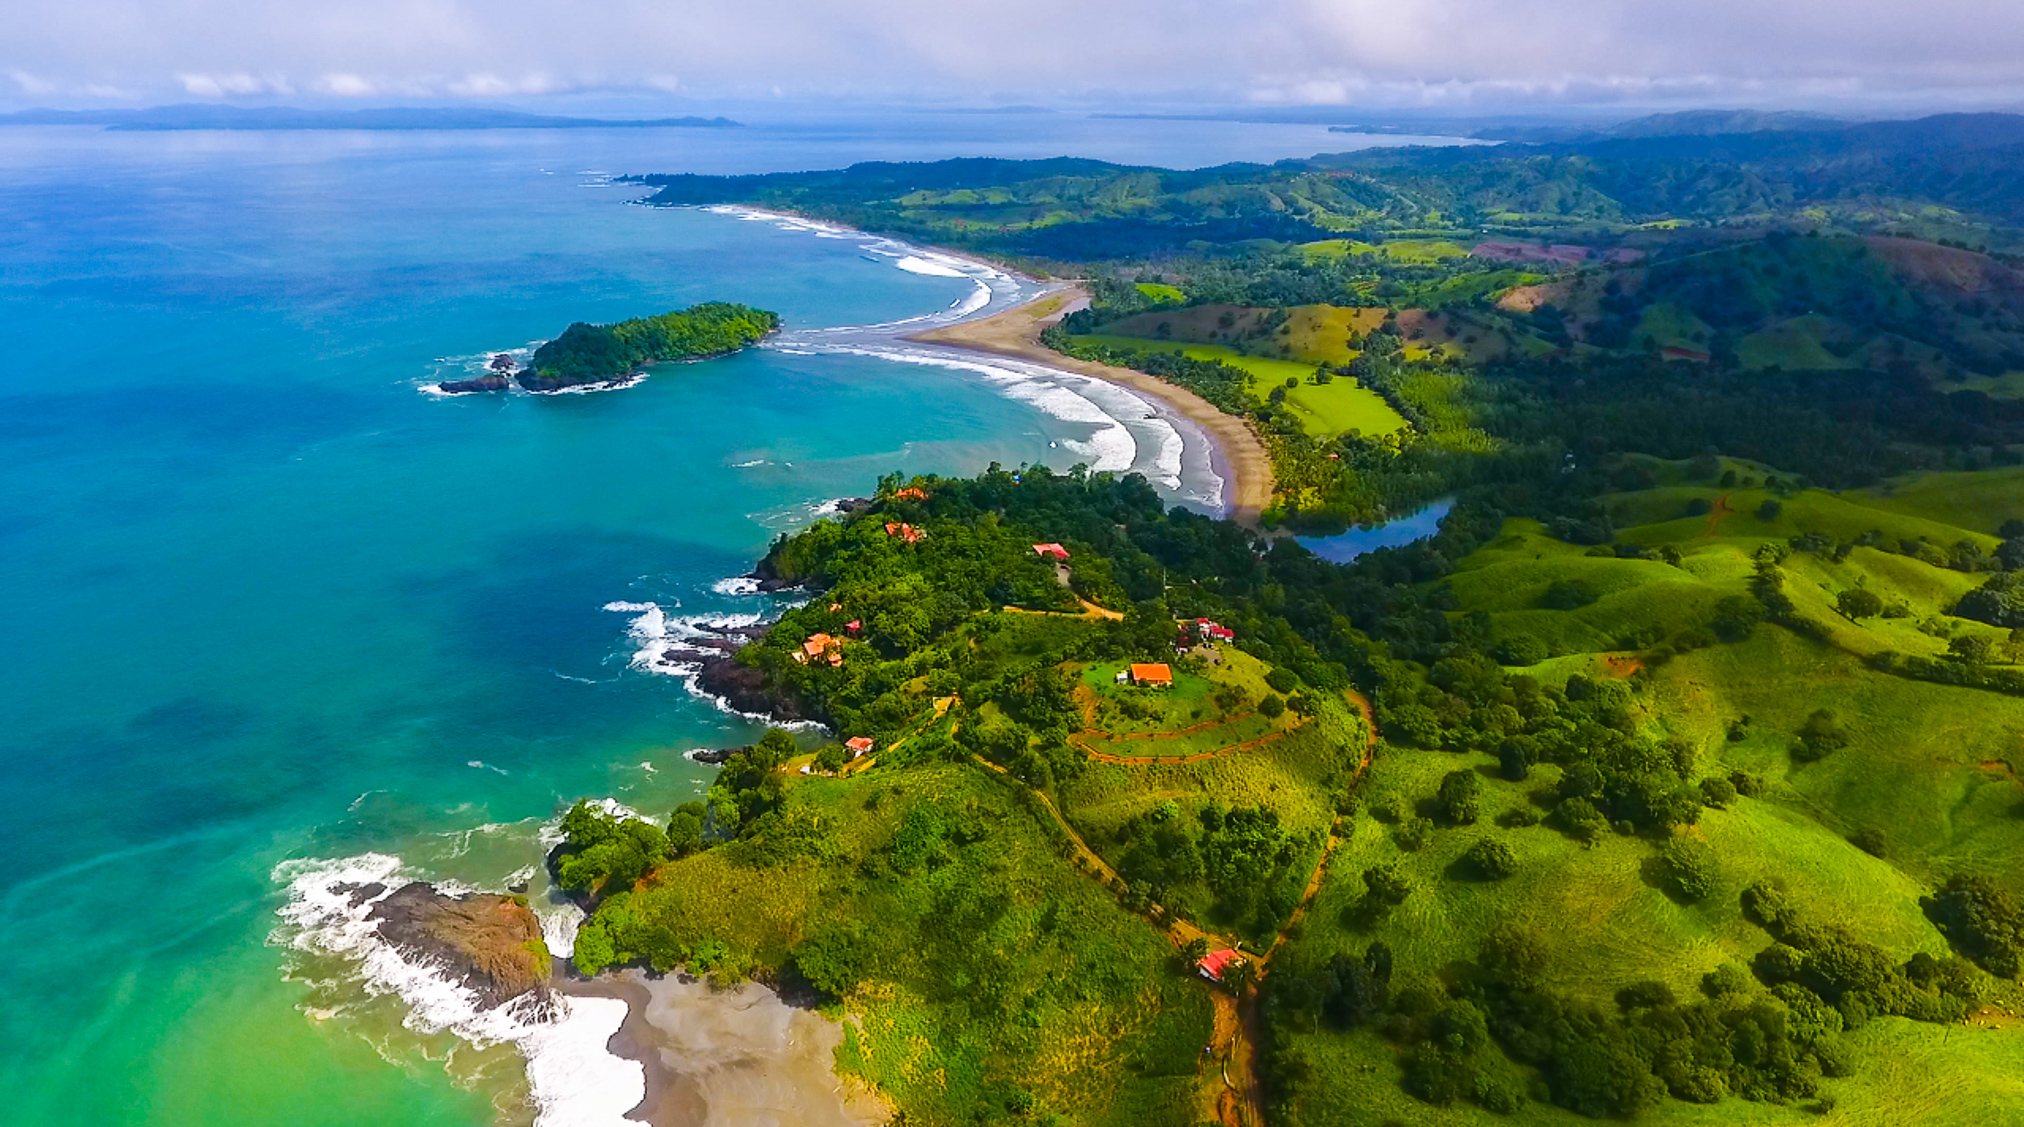 Real Estate Near The Beach For Sale Panama